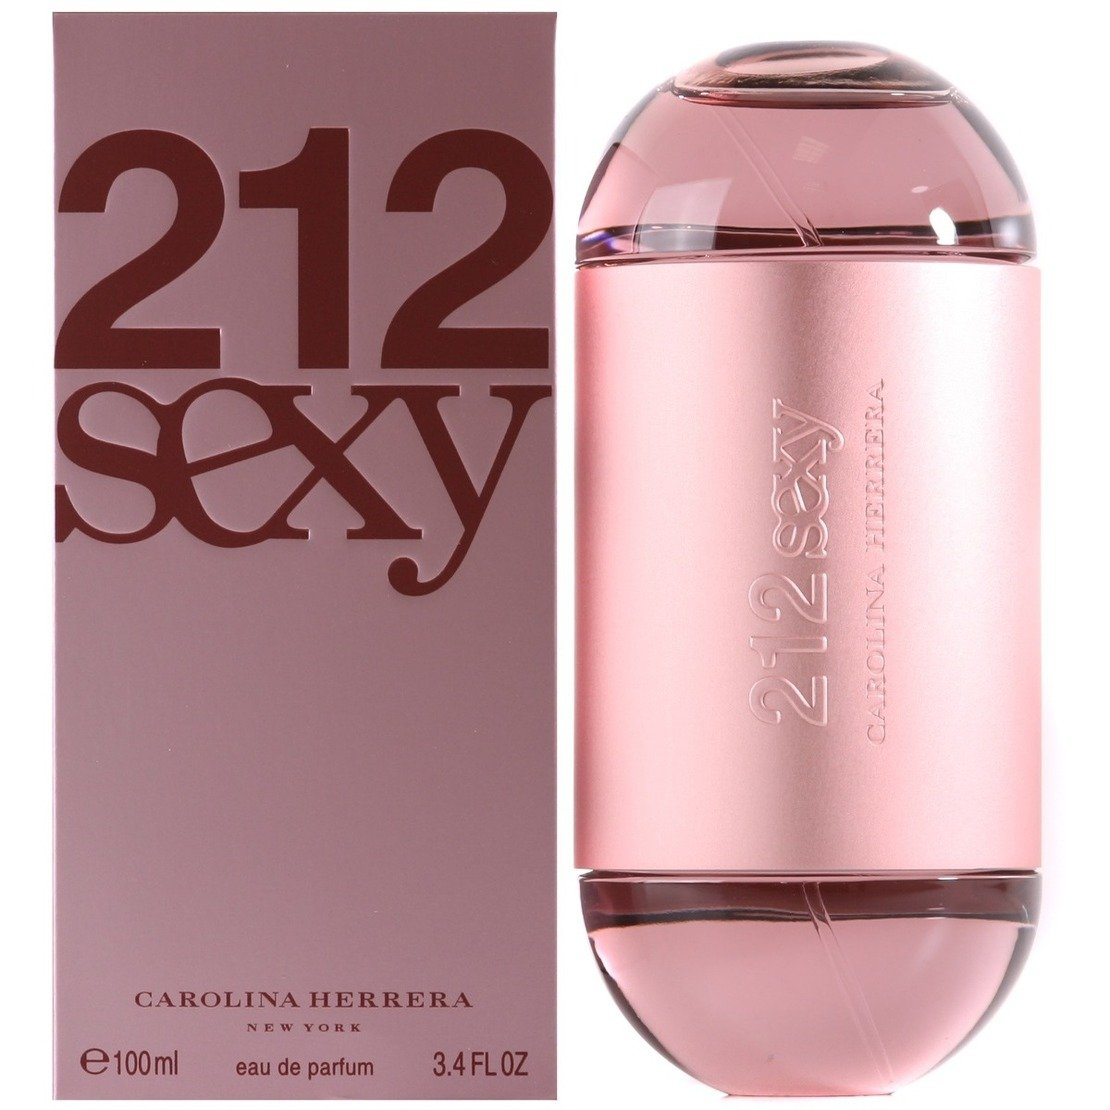 perfume-212-sexy-carolina-herrera-100ml